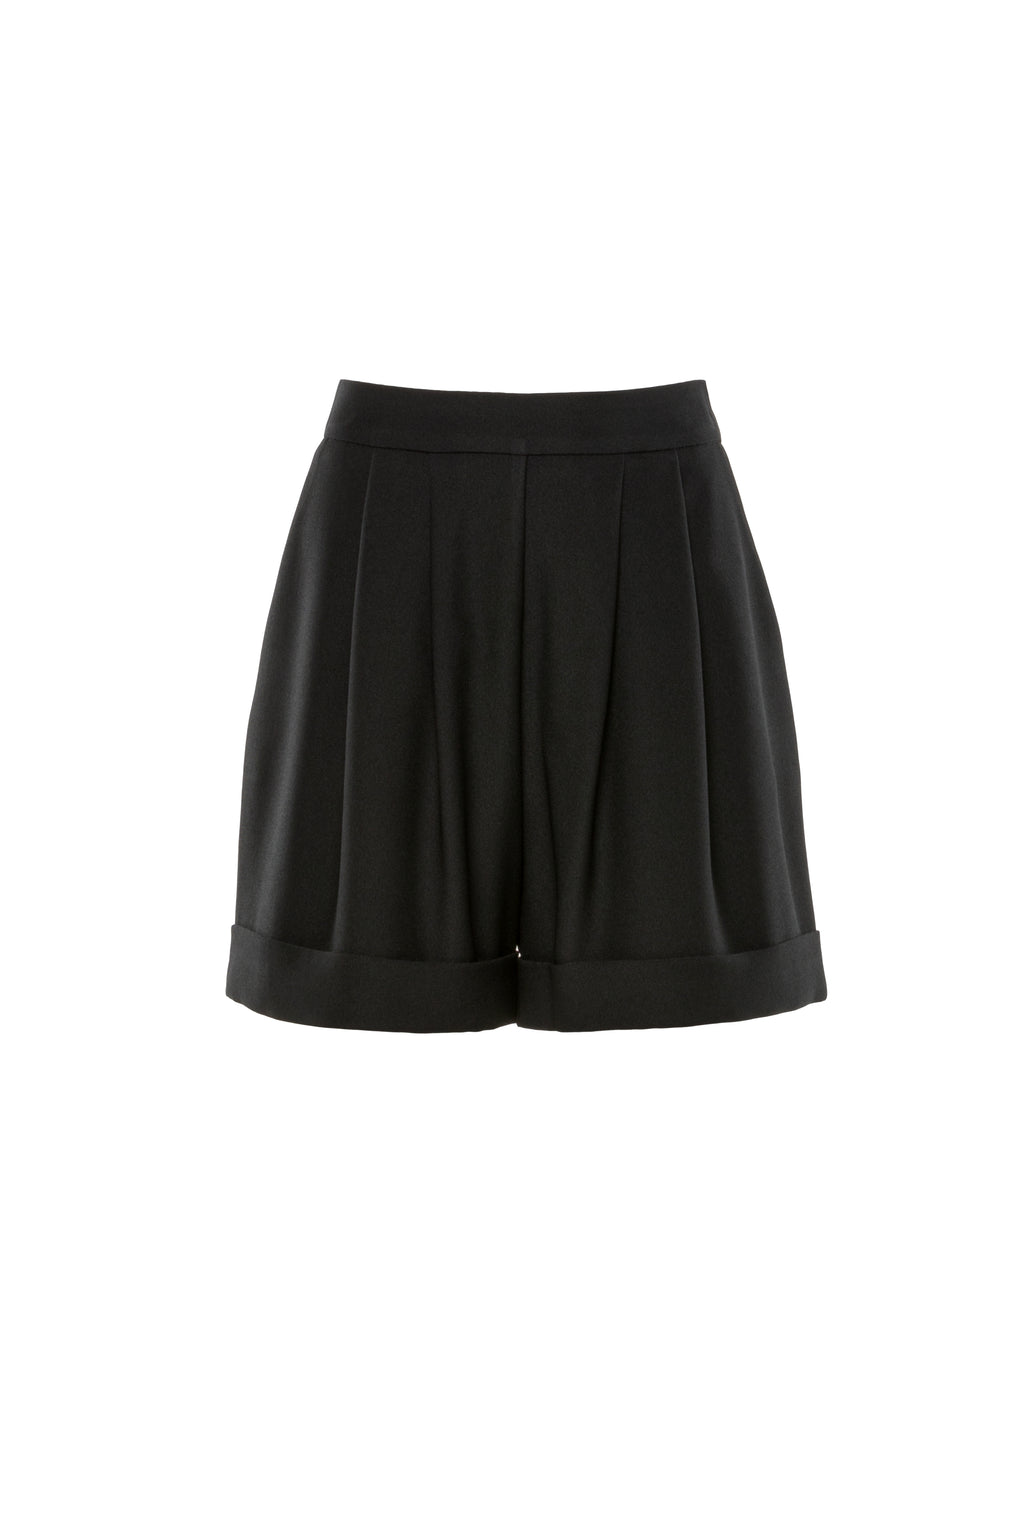 The Black Bianca Shorts